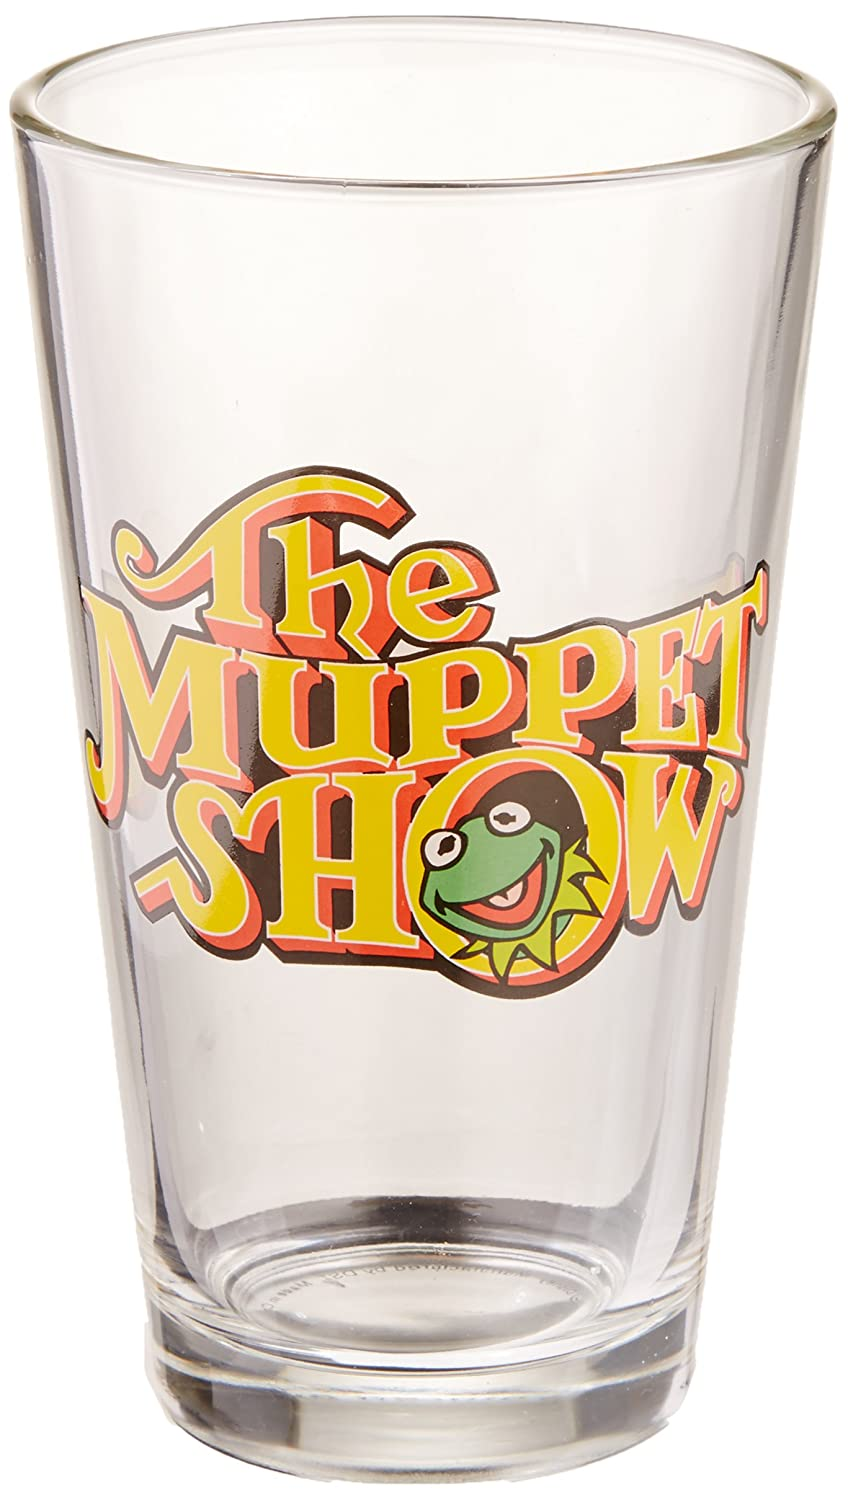 The Muppet Show Logo Pint Glass Diamond Select Toys The Muppets